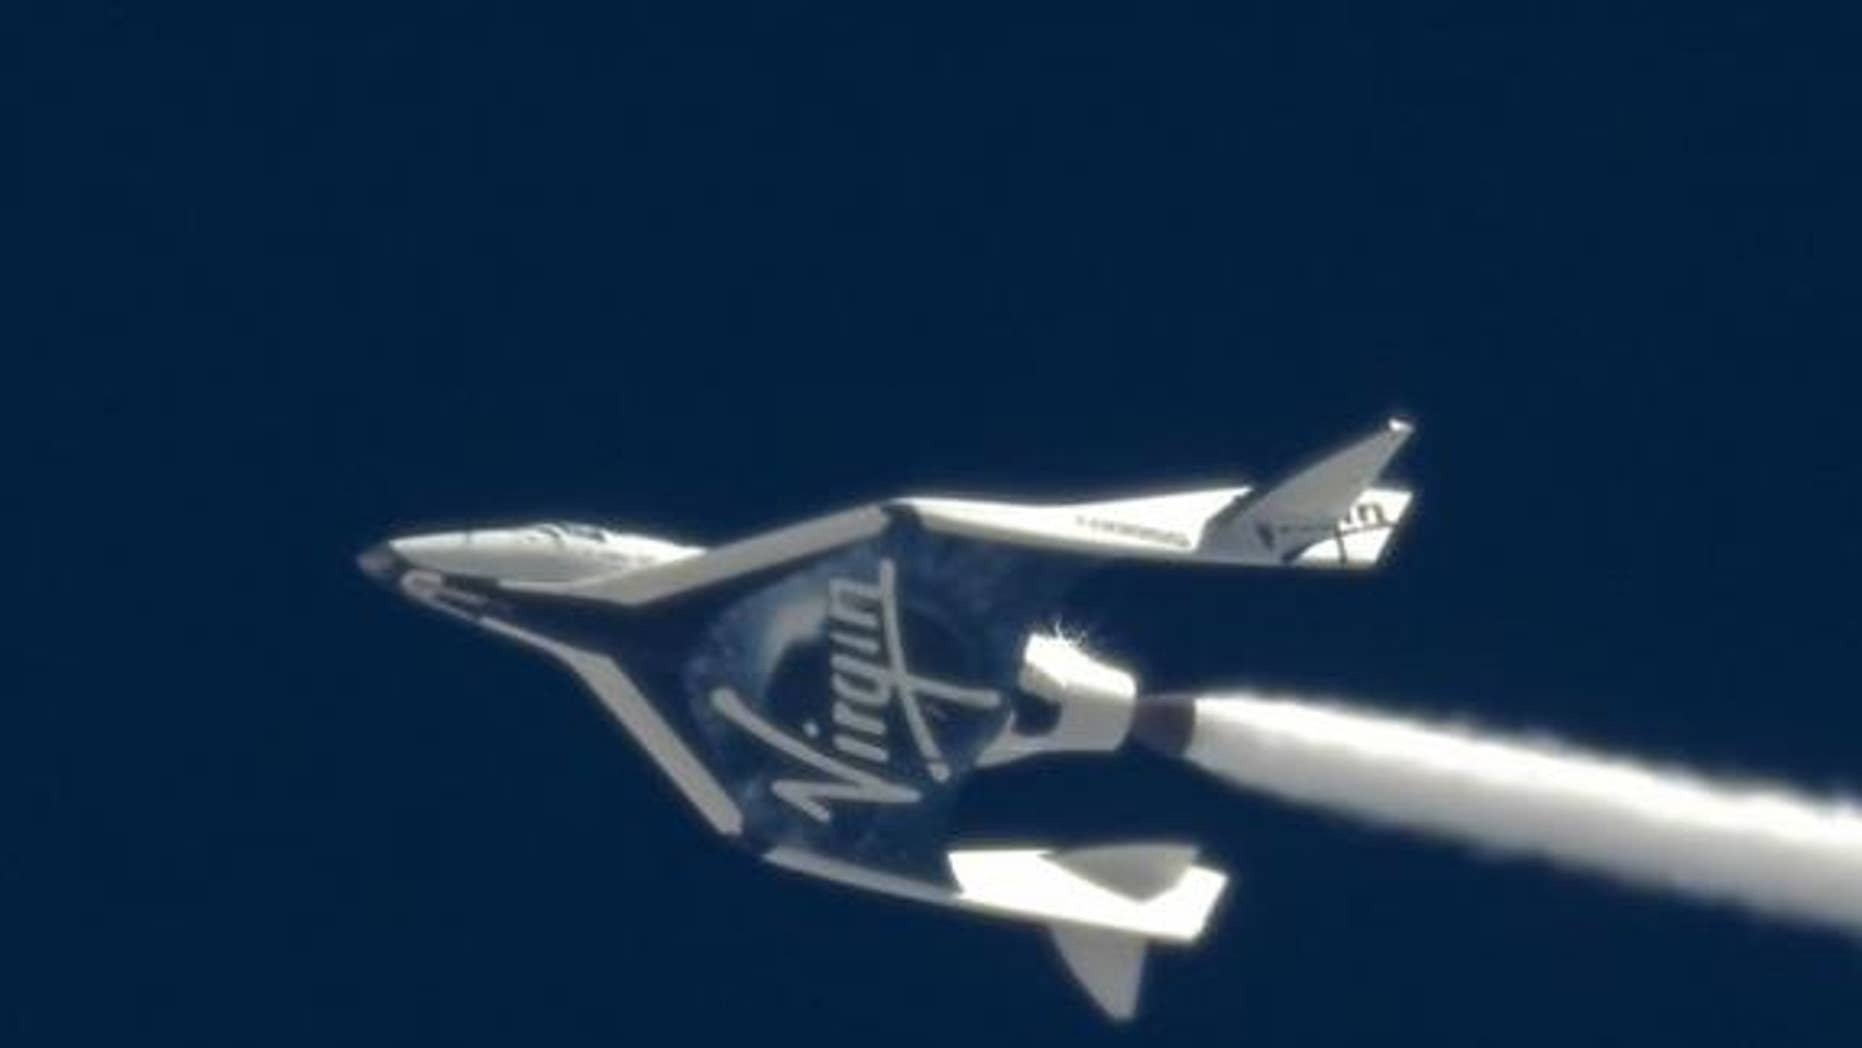 For the first time ever, oxidizer flows through SpaceShipTwo's rocket nozzle in flight, successfully demonstrating key components of the system. The April 12, 2013 test flight was a key milestone in advance of SpaceShipTwo's first rocket powere